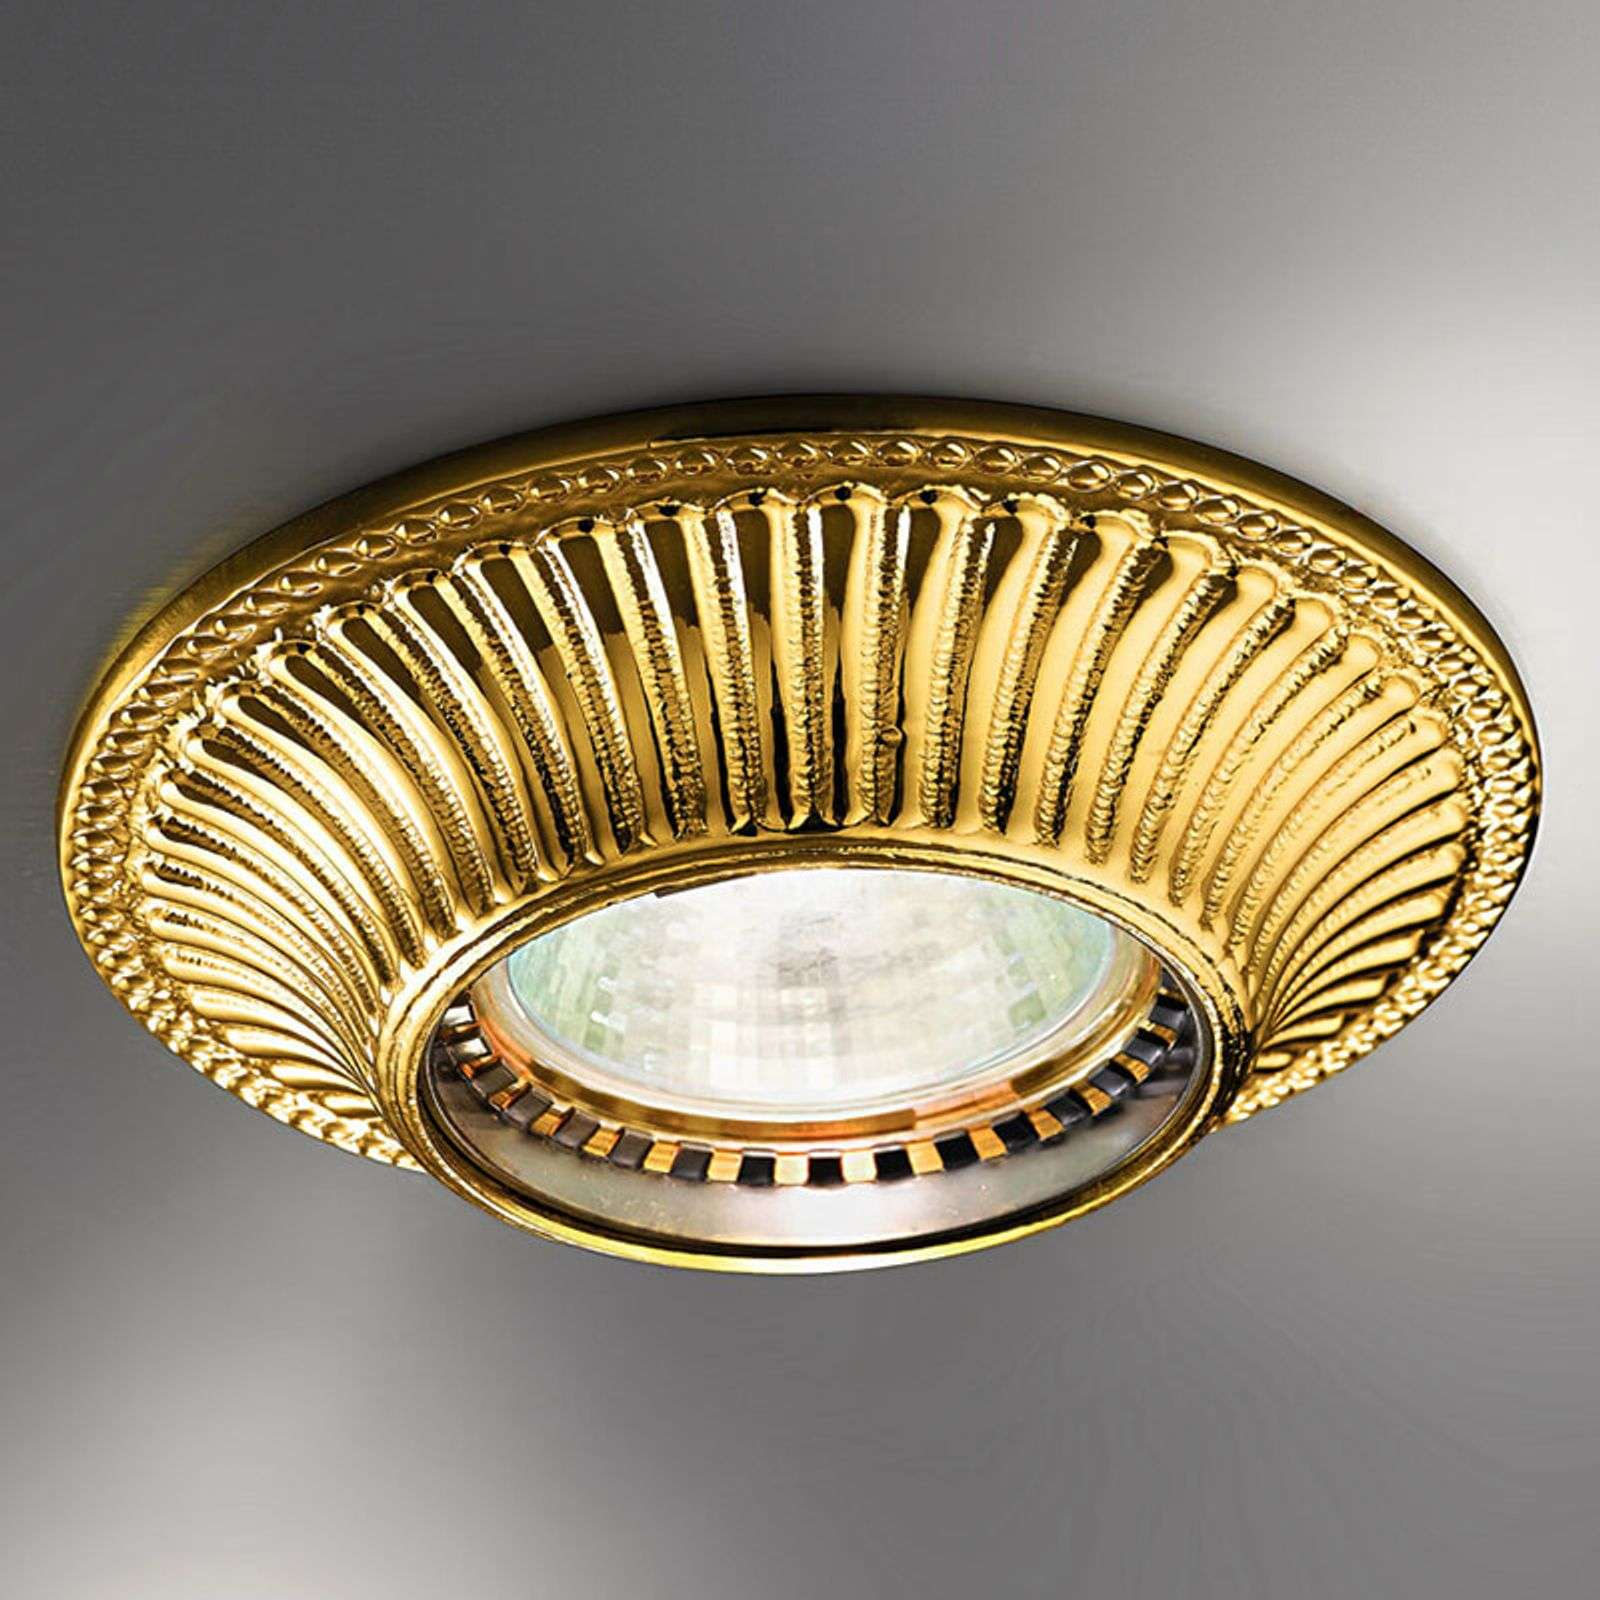 Appealing recessed light Milord, French gold